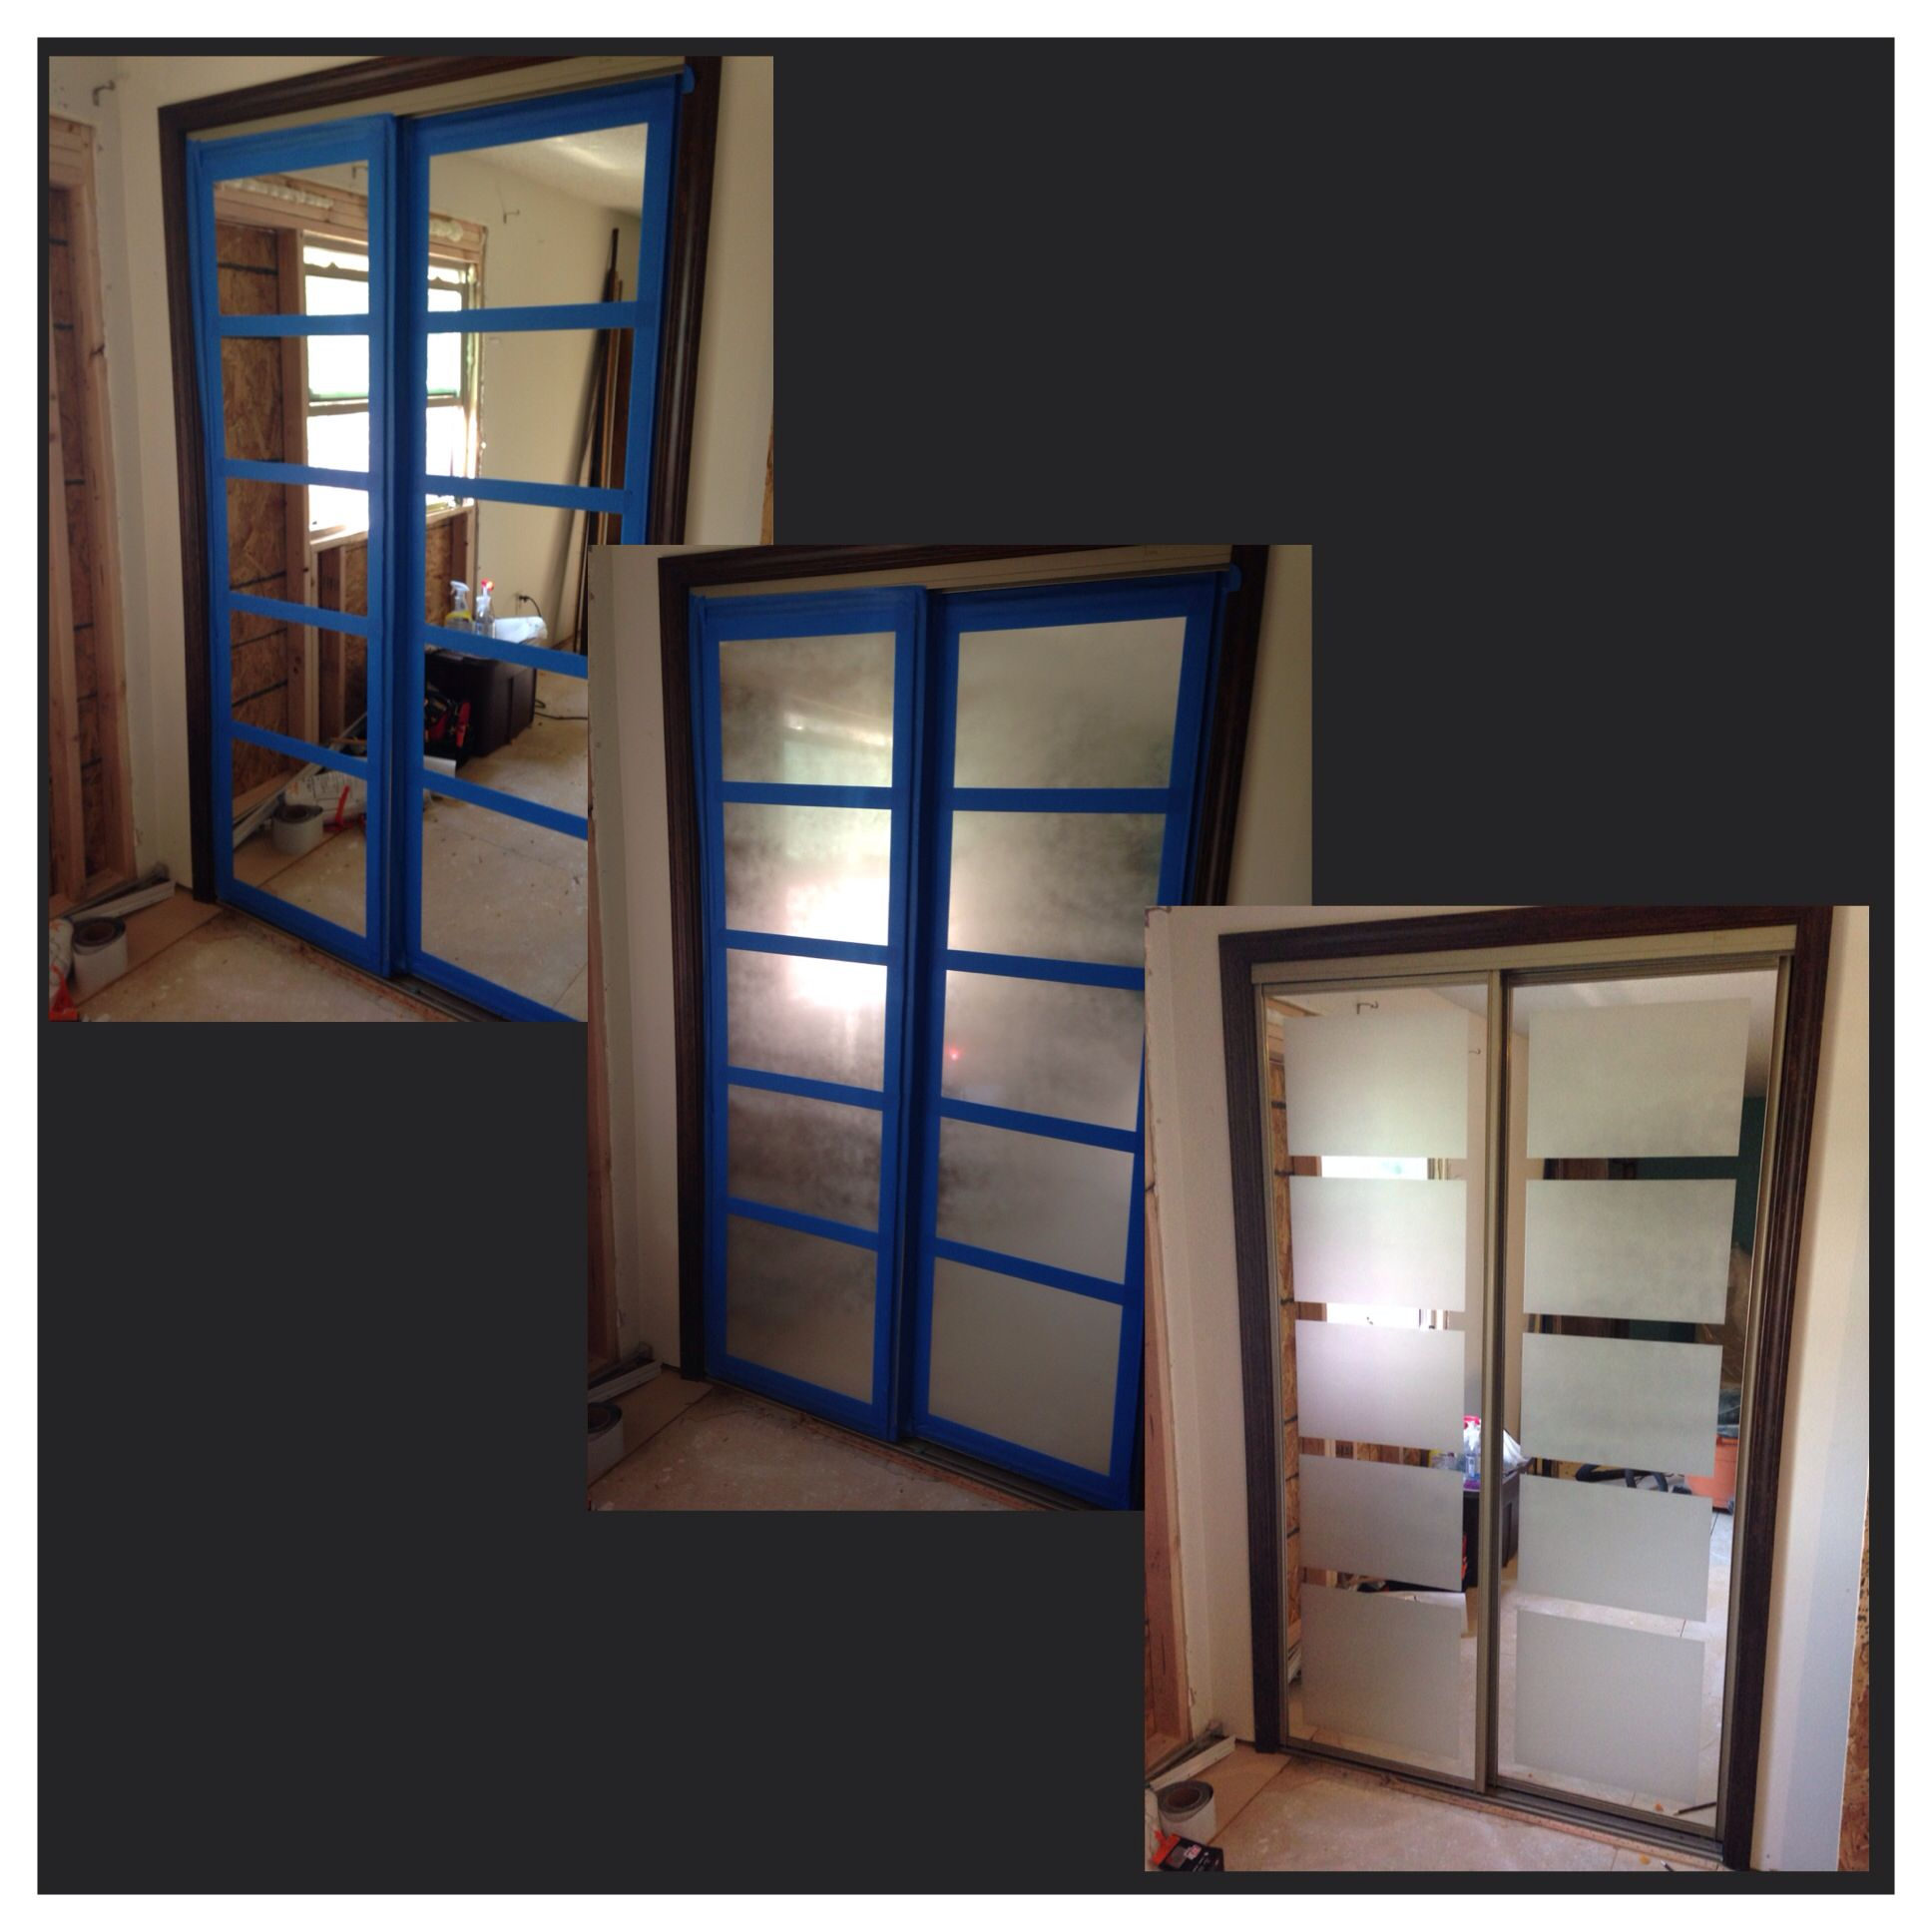 Frosted Mirrored Closet Doors With Rust Oleum Frosted Glass Spray